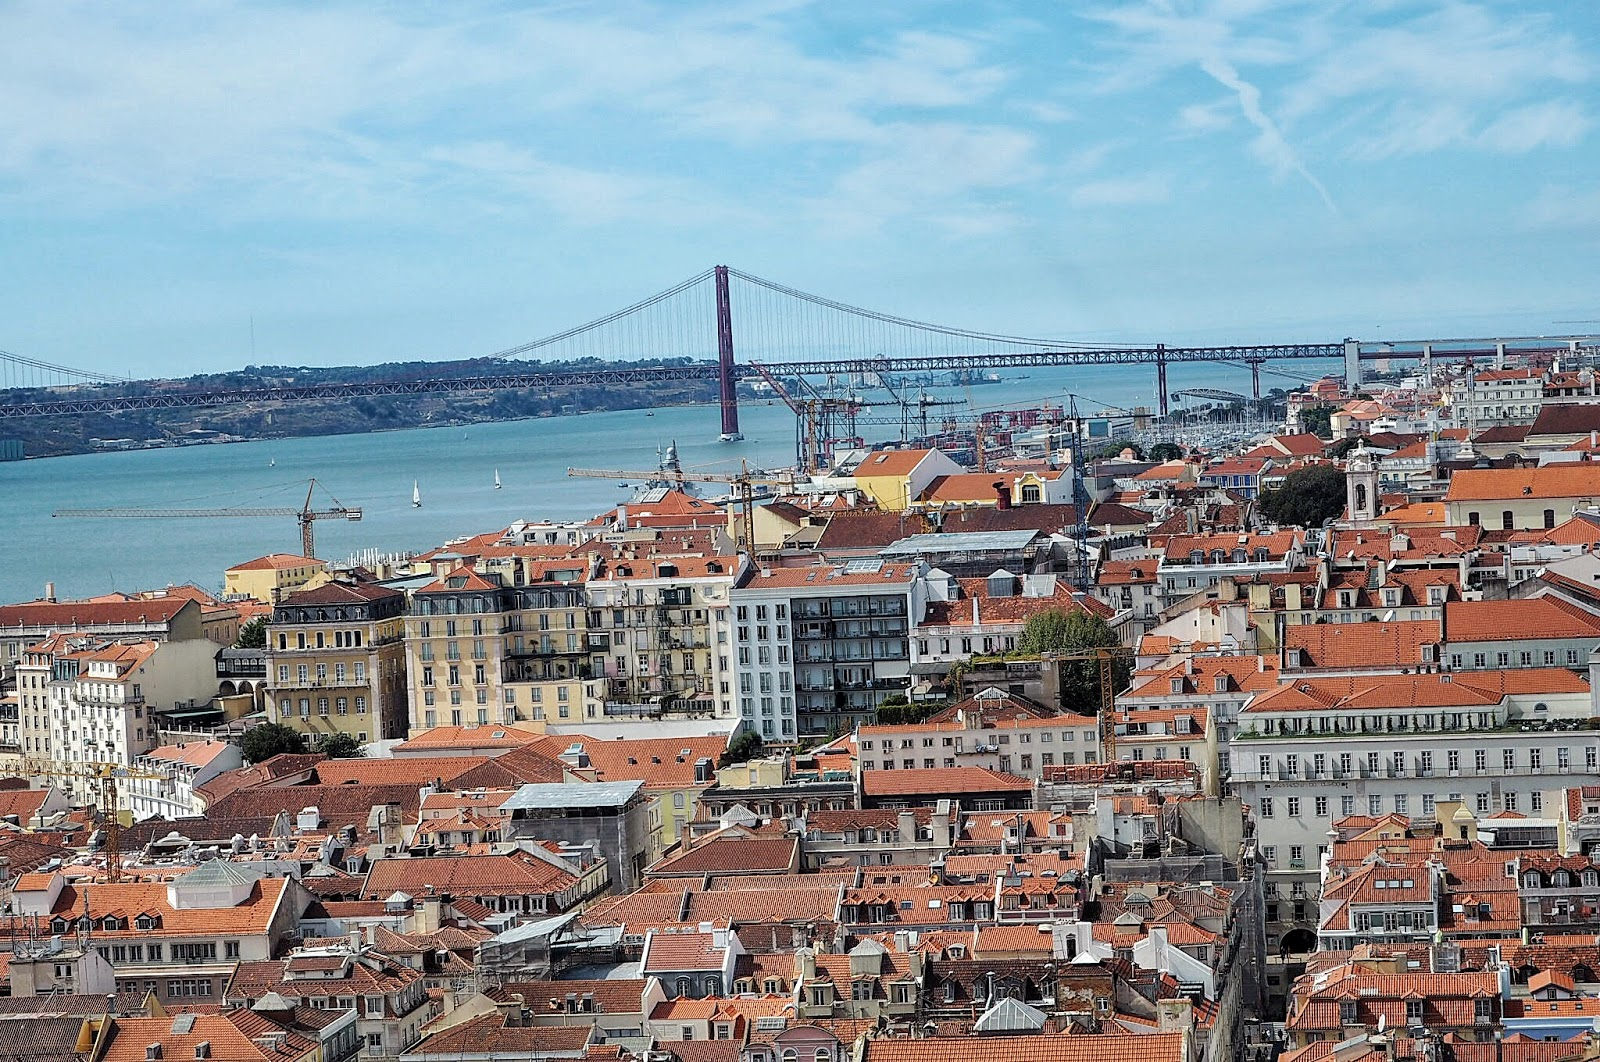 25 de Abril Bridge from Castello de Sao Jorge